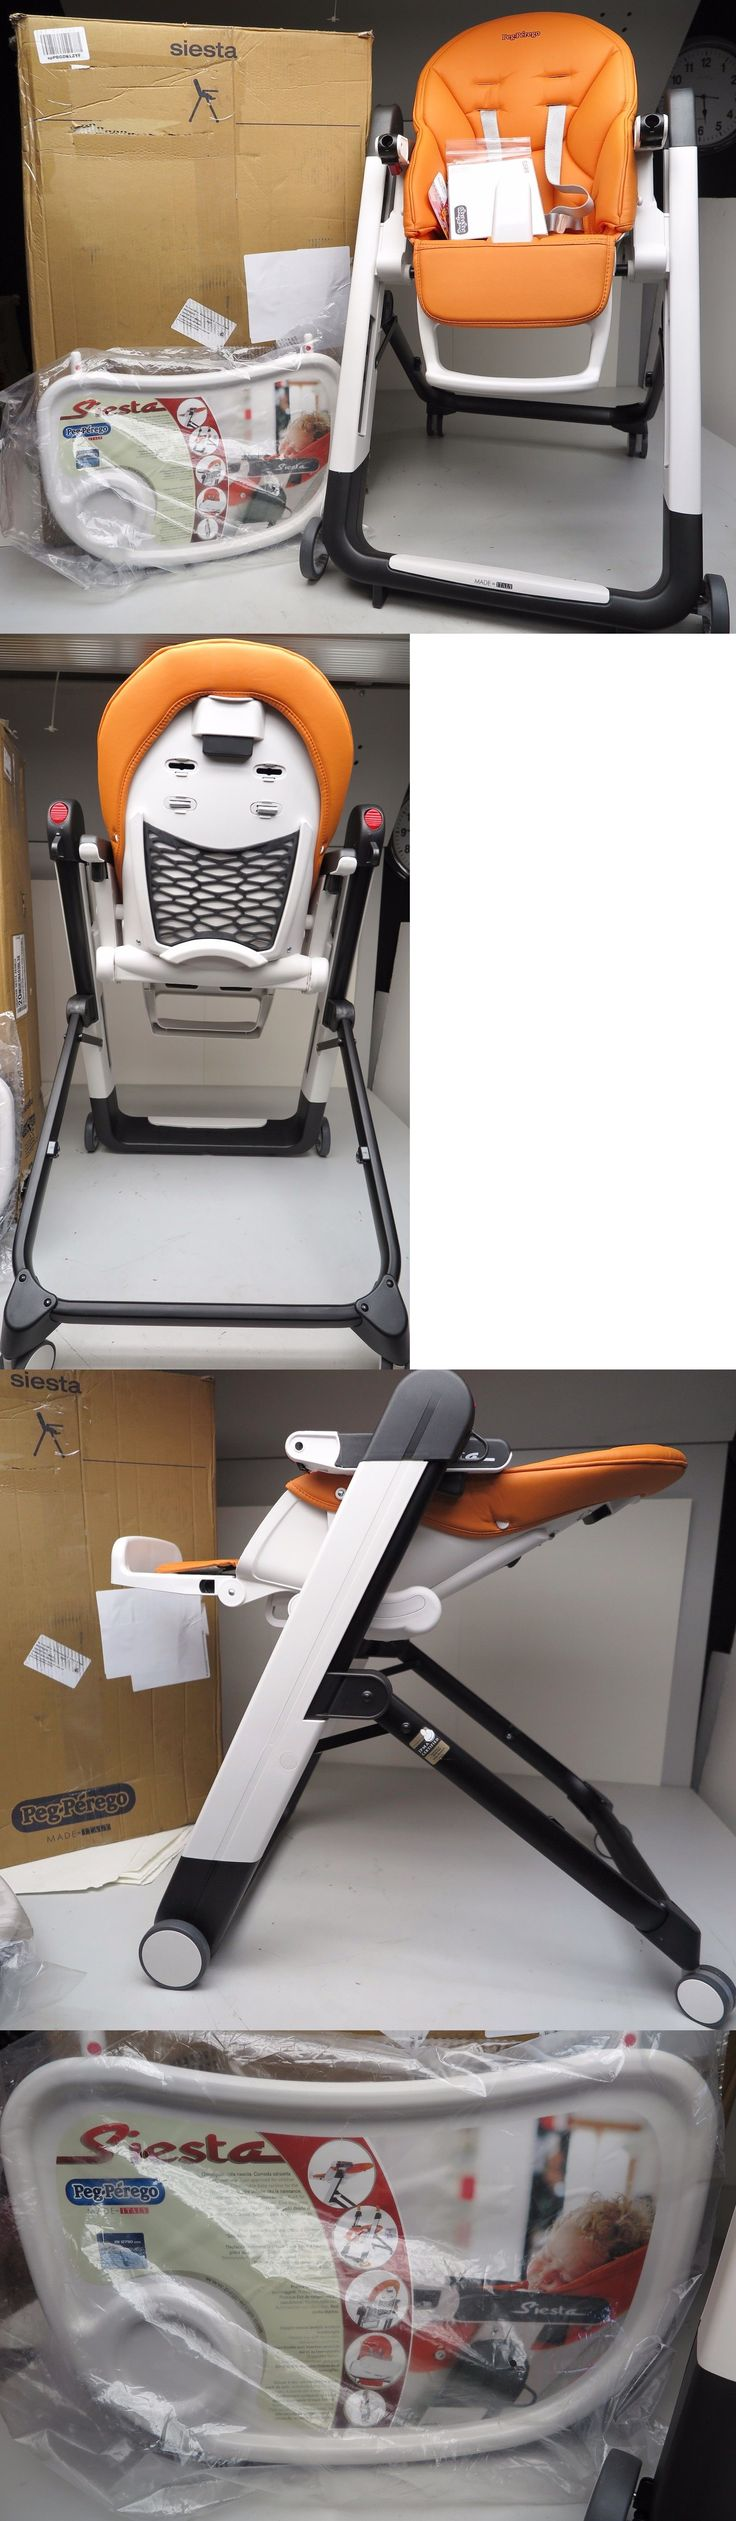 High Chairs 2986: New 2017 Peg Perego Siesta Baby Toddler High Chair Arancia Orange Imslesna03bl38 -> BUY IT NOW ONLY: $264.96 on eBay!